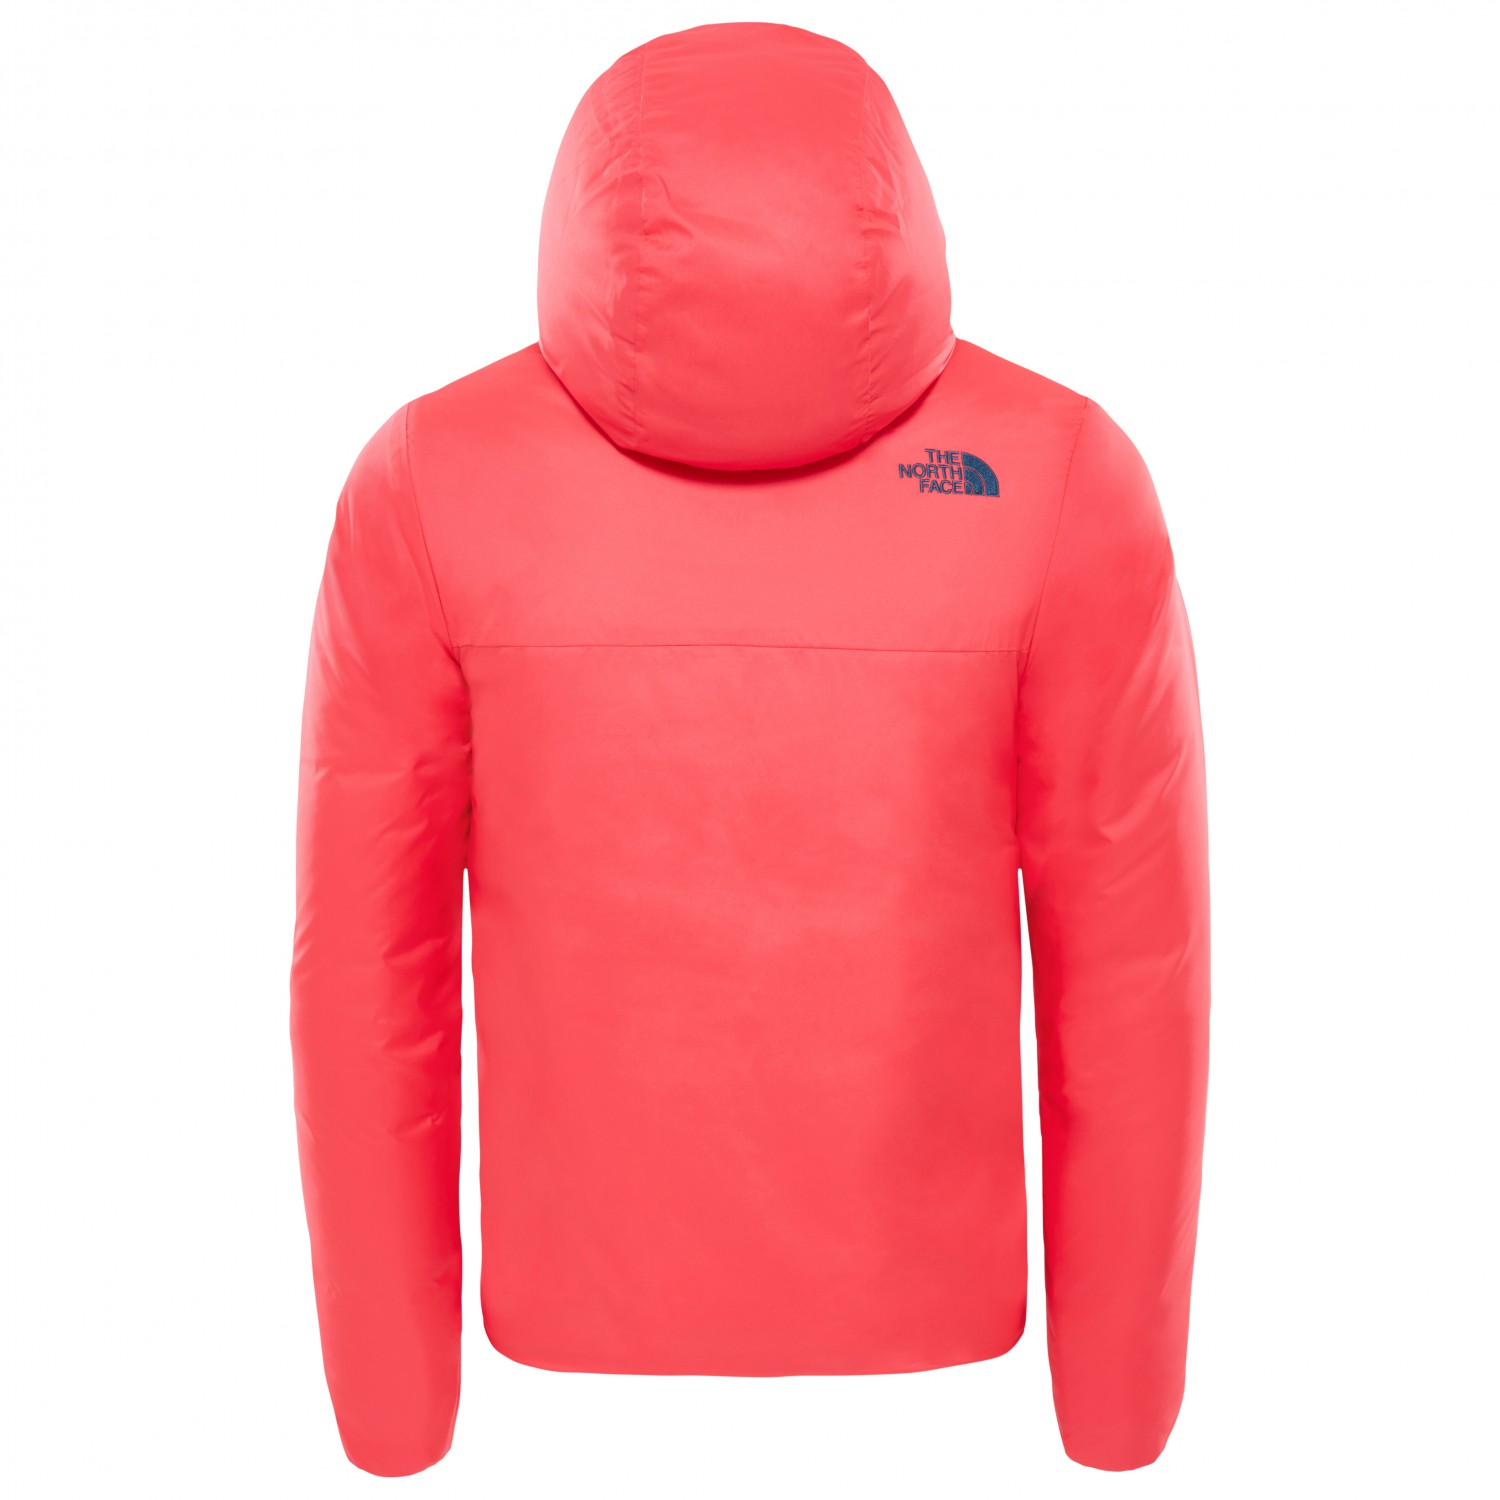 9c53ee8f54f7 ... The North Face - Girl s Reversible Perrito Jacket - Synthetic jacket ...